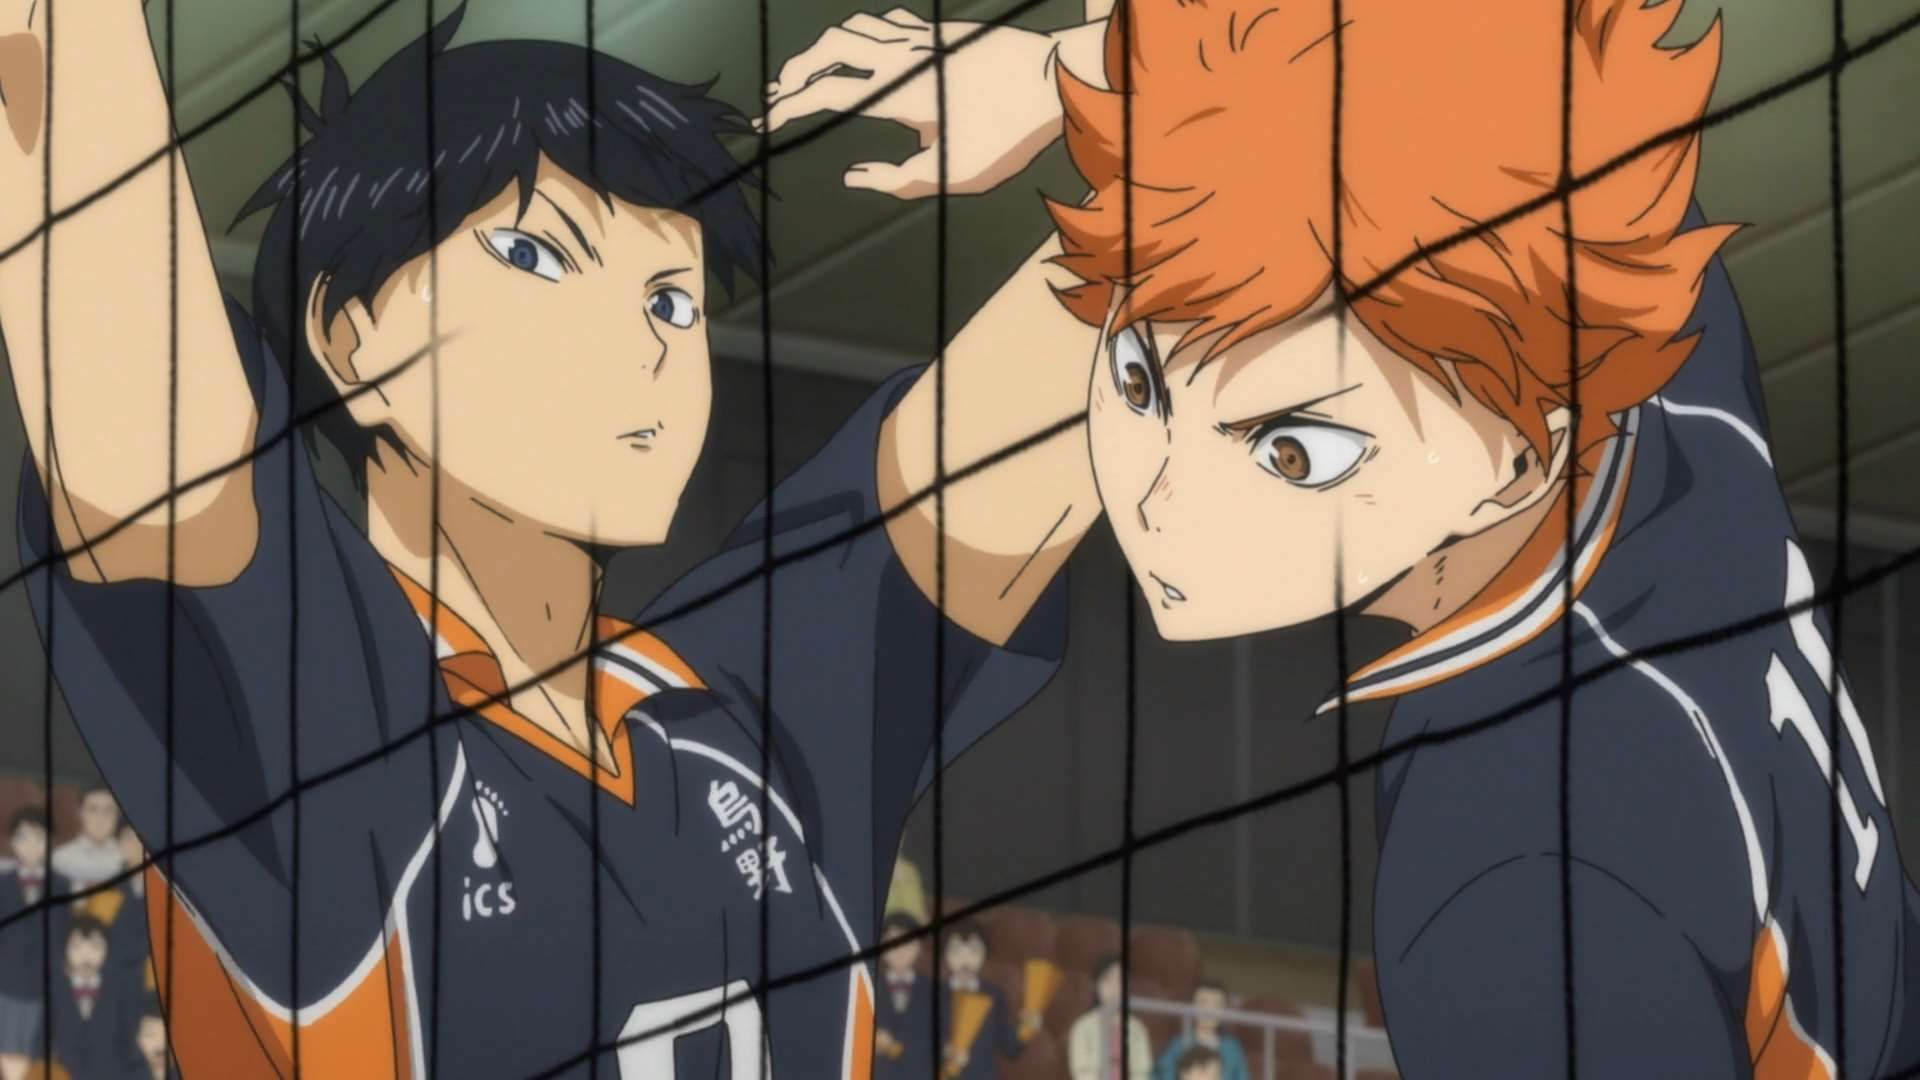 Haikyuu Season 4 Episode 16Re Spoilers, Title and Synopsis